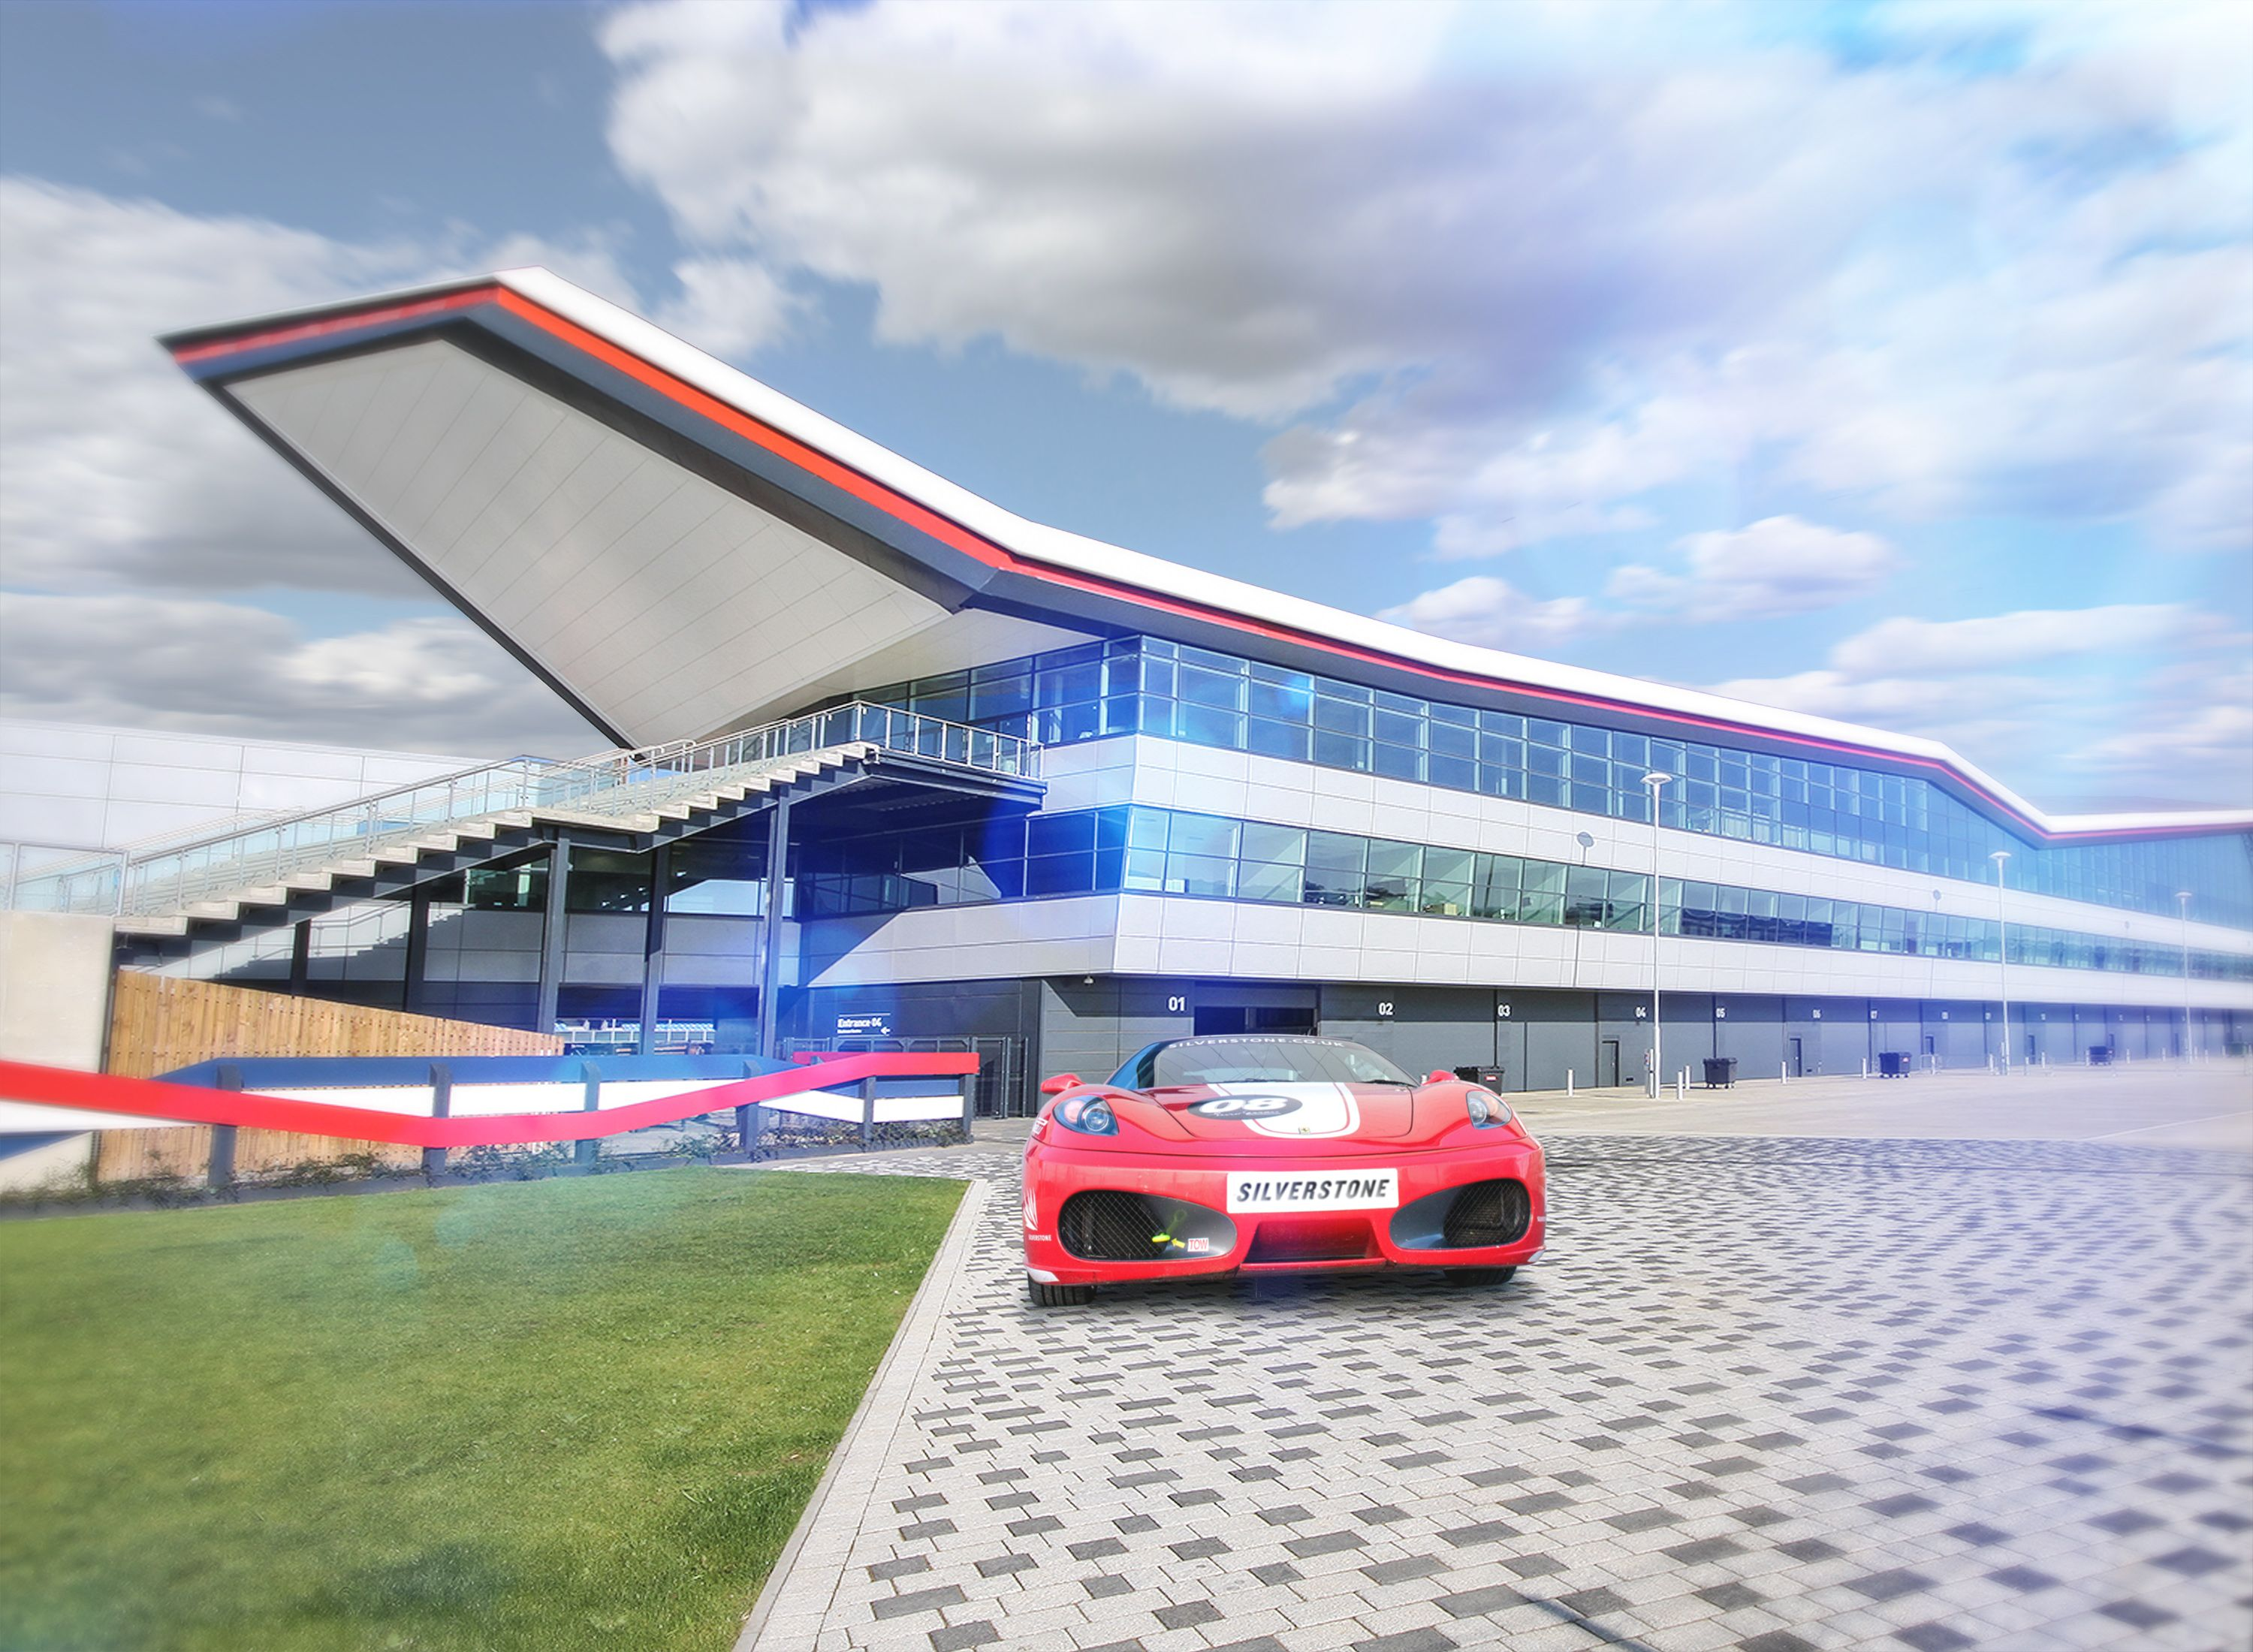 SILVERSTONE ACCELERATES TOWARDS RECOVERY WITH 53% INCREASE IN CONFERENCE AND EVENT ENQUIRIES